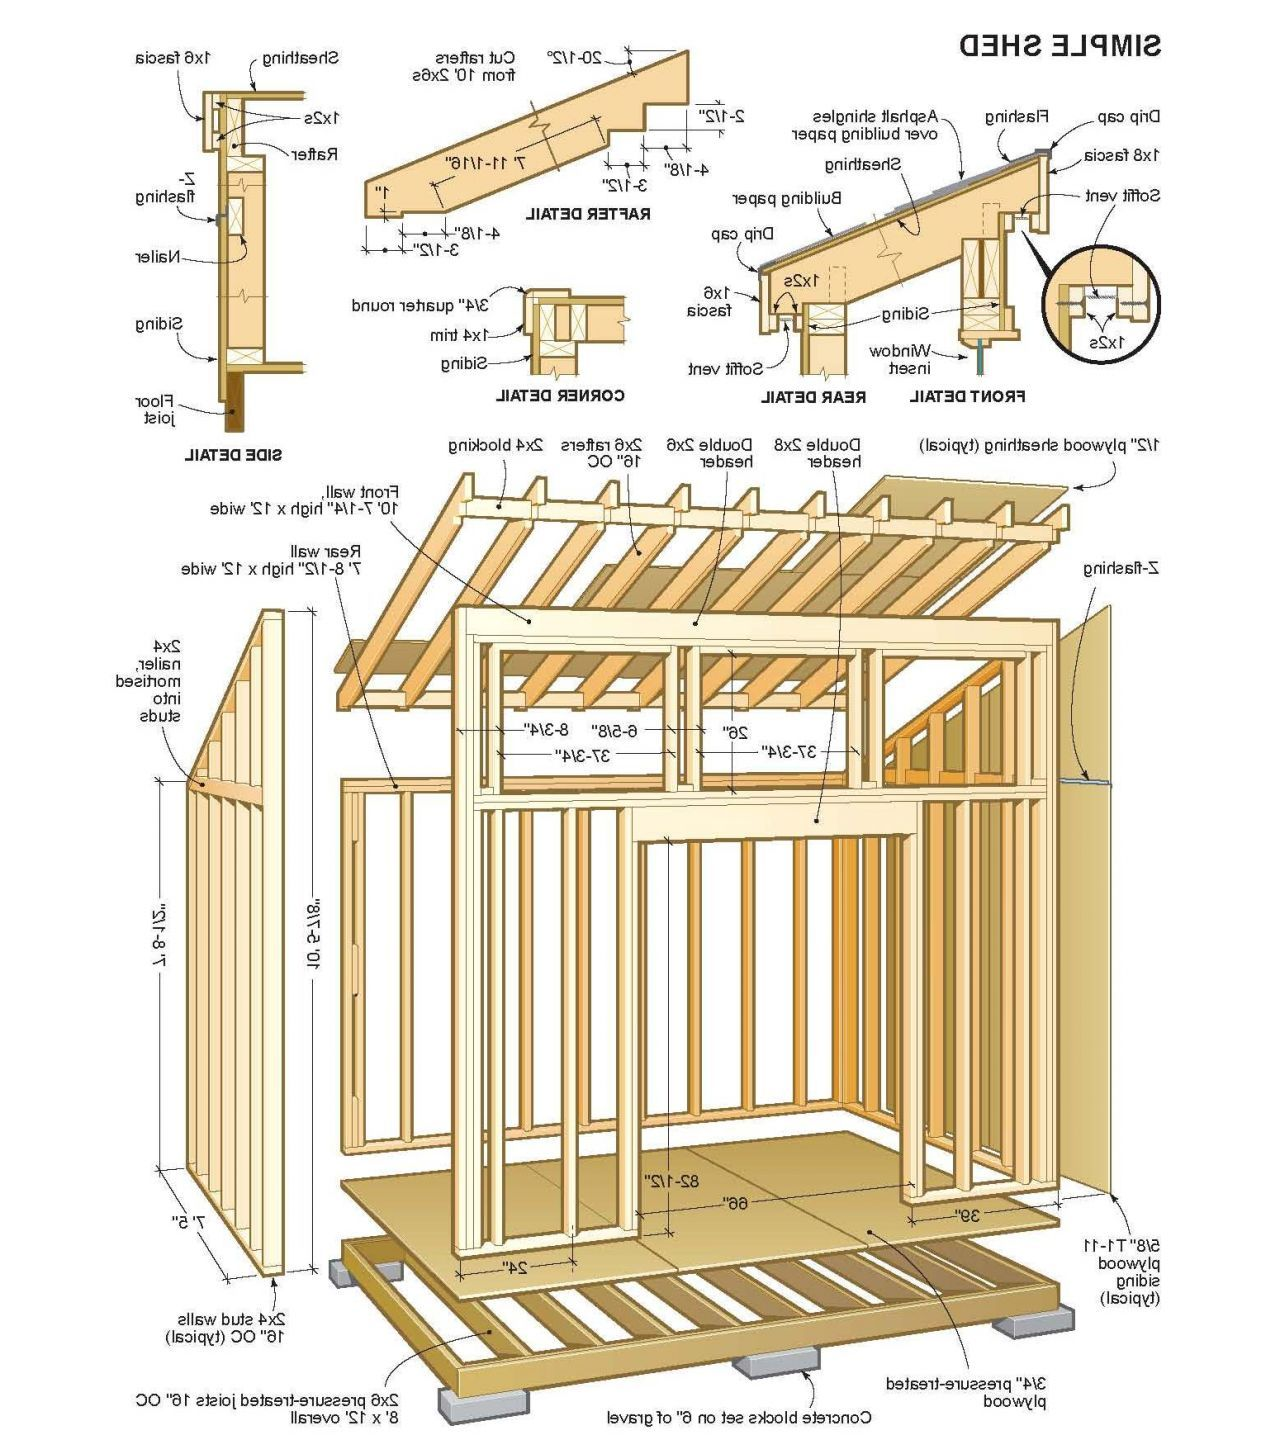 Shed Plans Free Uk Pinterest Com Now You Can Build Any Shed In A Weekend Even If You Ve Zero Woodworking Exp Wood Shed Plans Storage Shed Plans Simple Shed